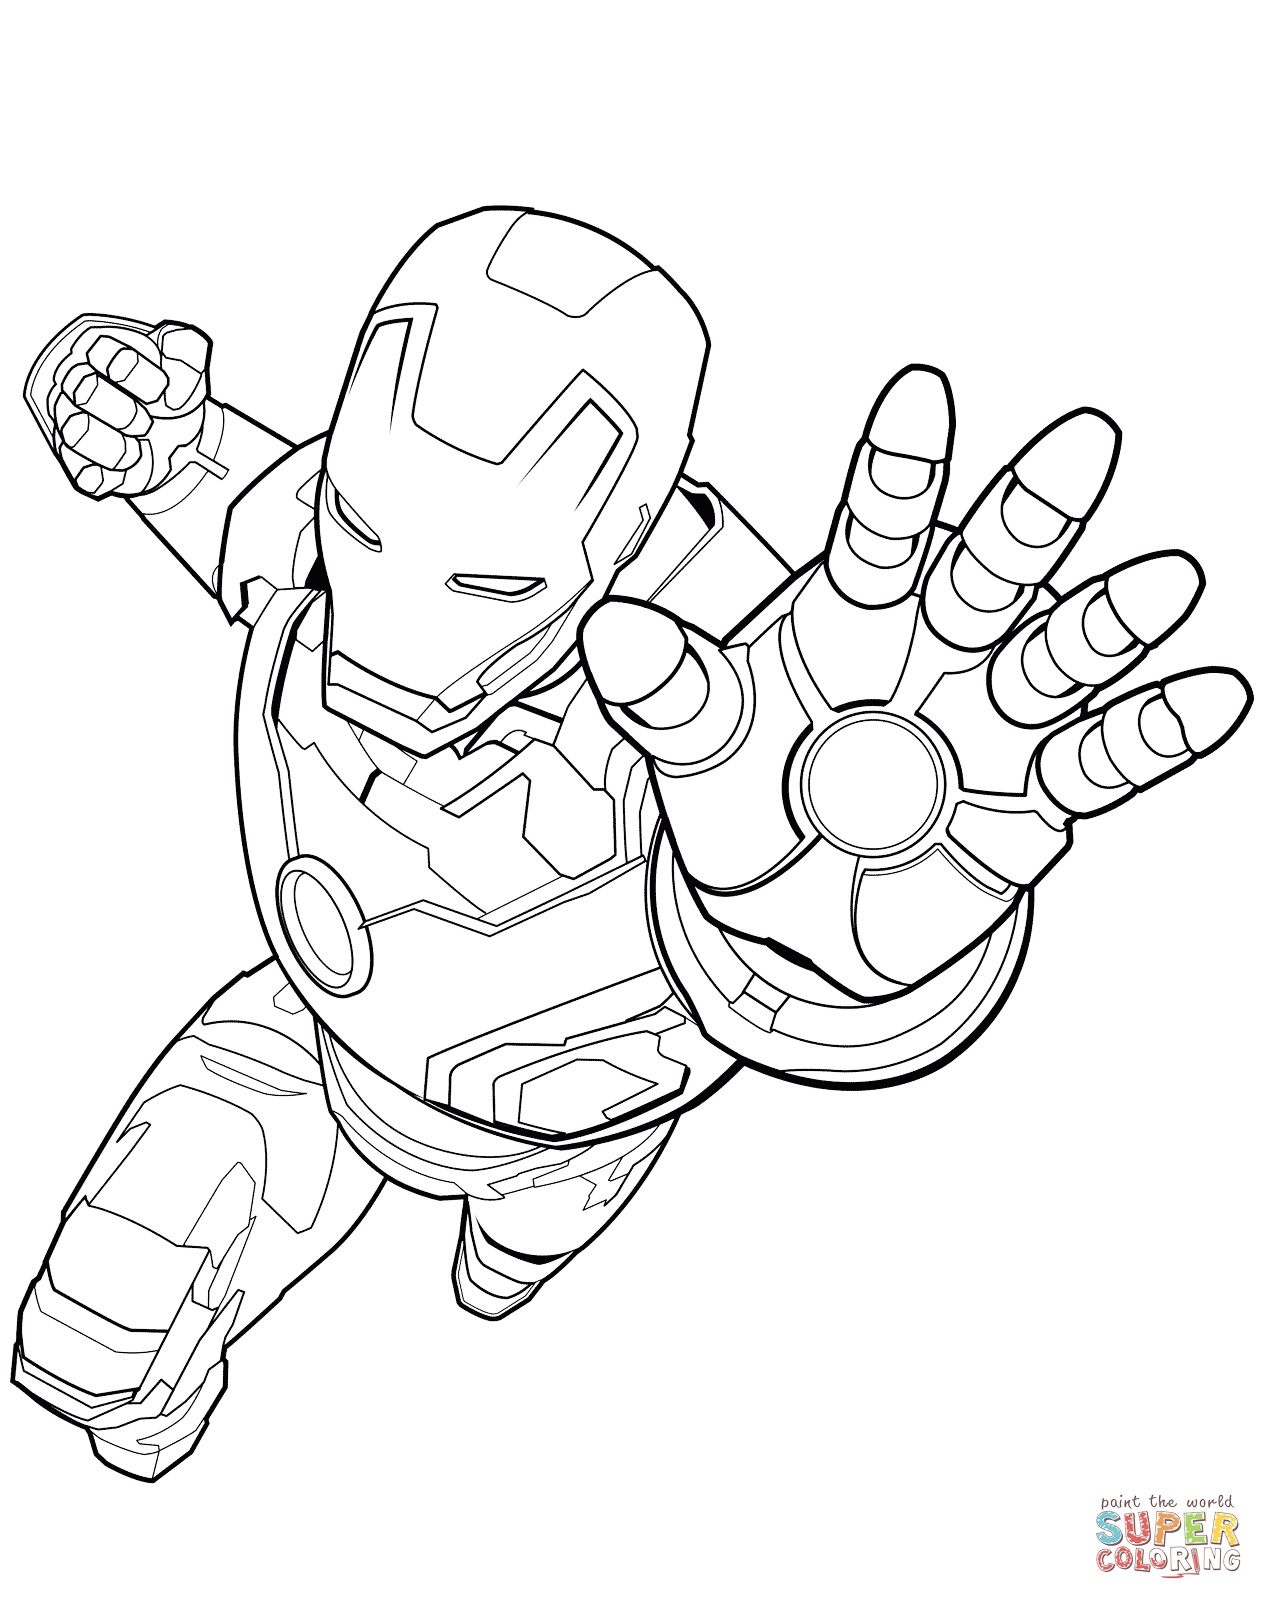 Captain Marvel Coloring Pages At Getdrawings Com Free For Personal